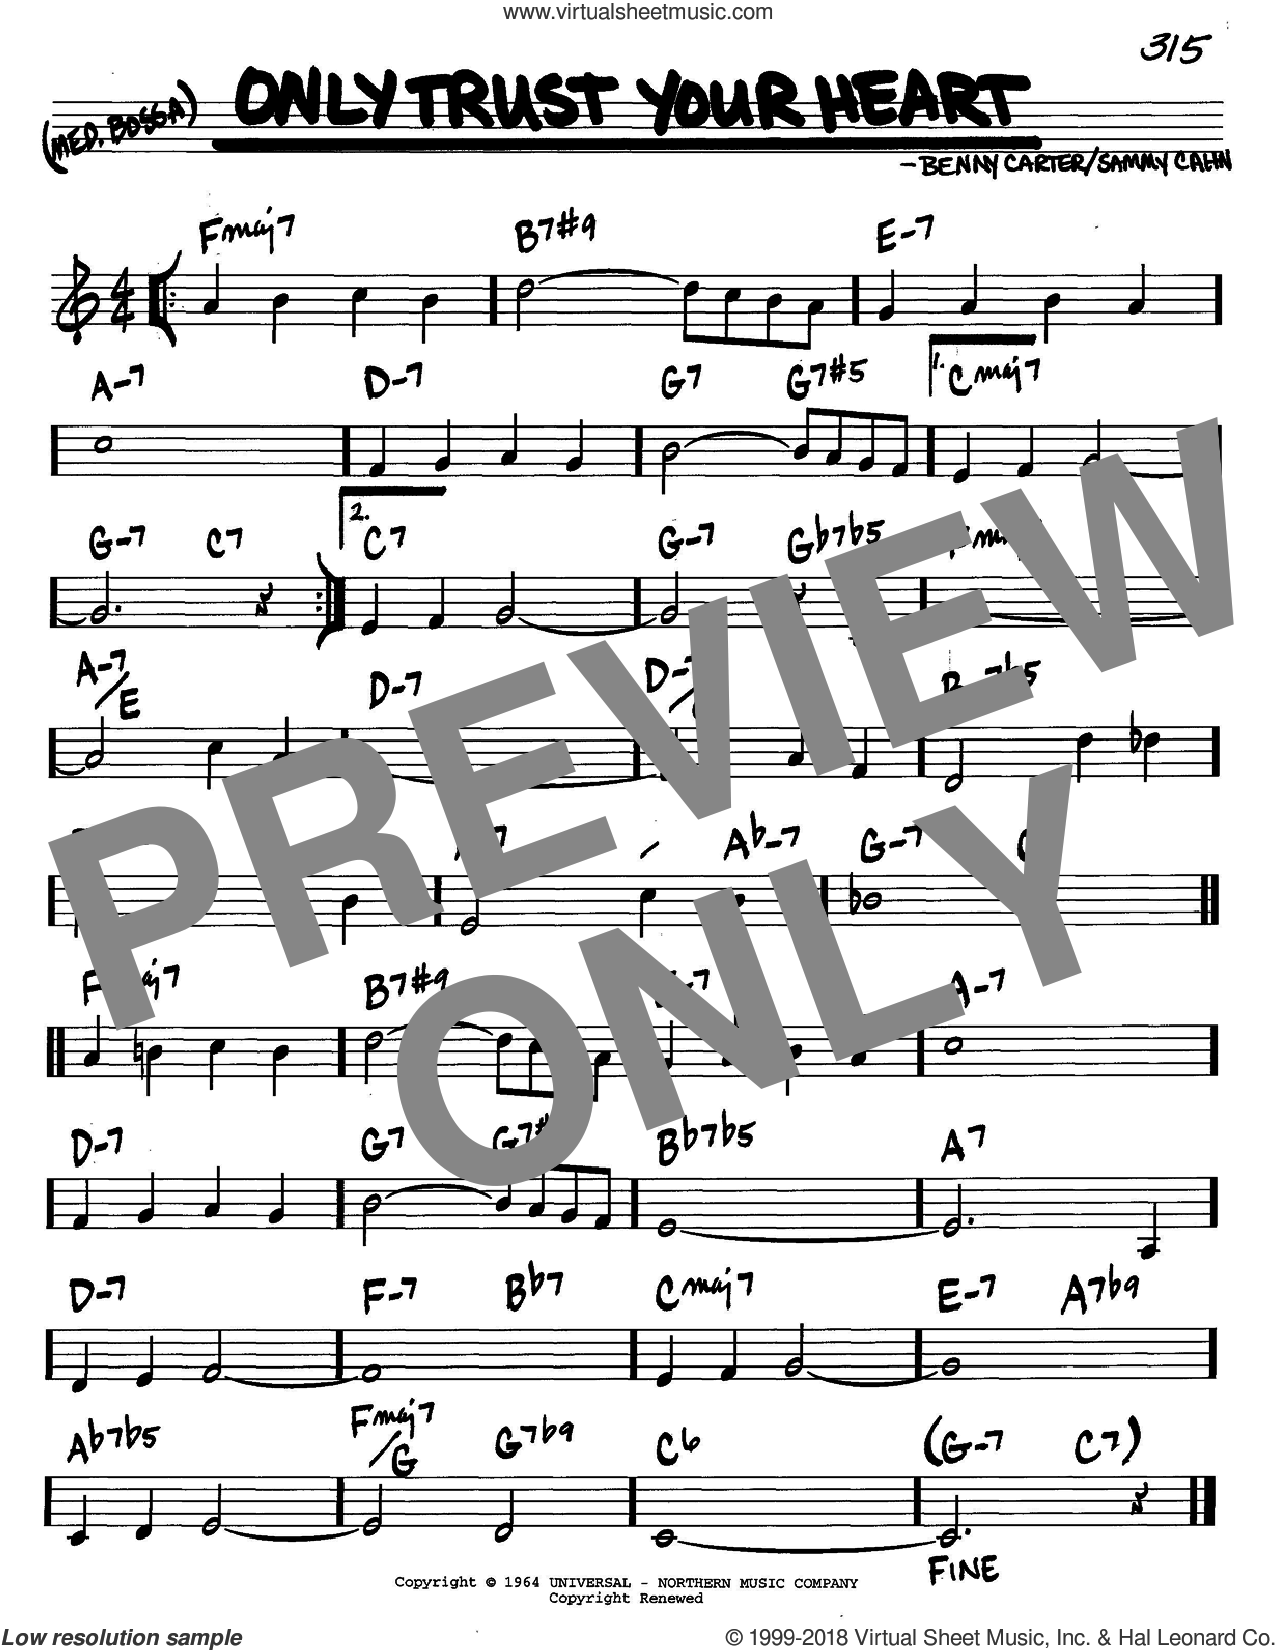 Only Trust Your Heart sheet music for voice and other instruments (in C) by Sammy Cahn and Benny Carter, intermediate skill level